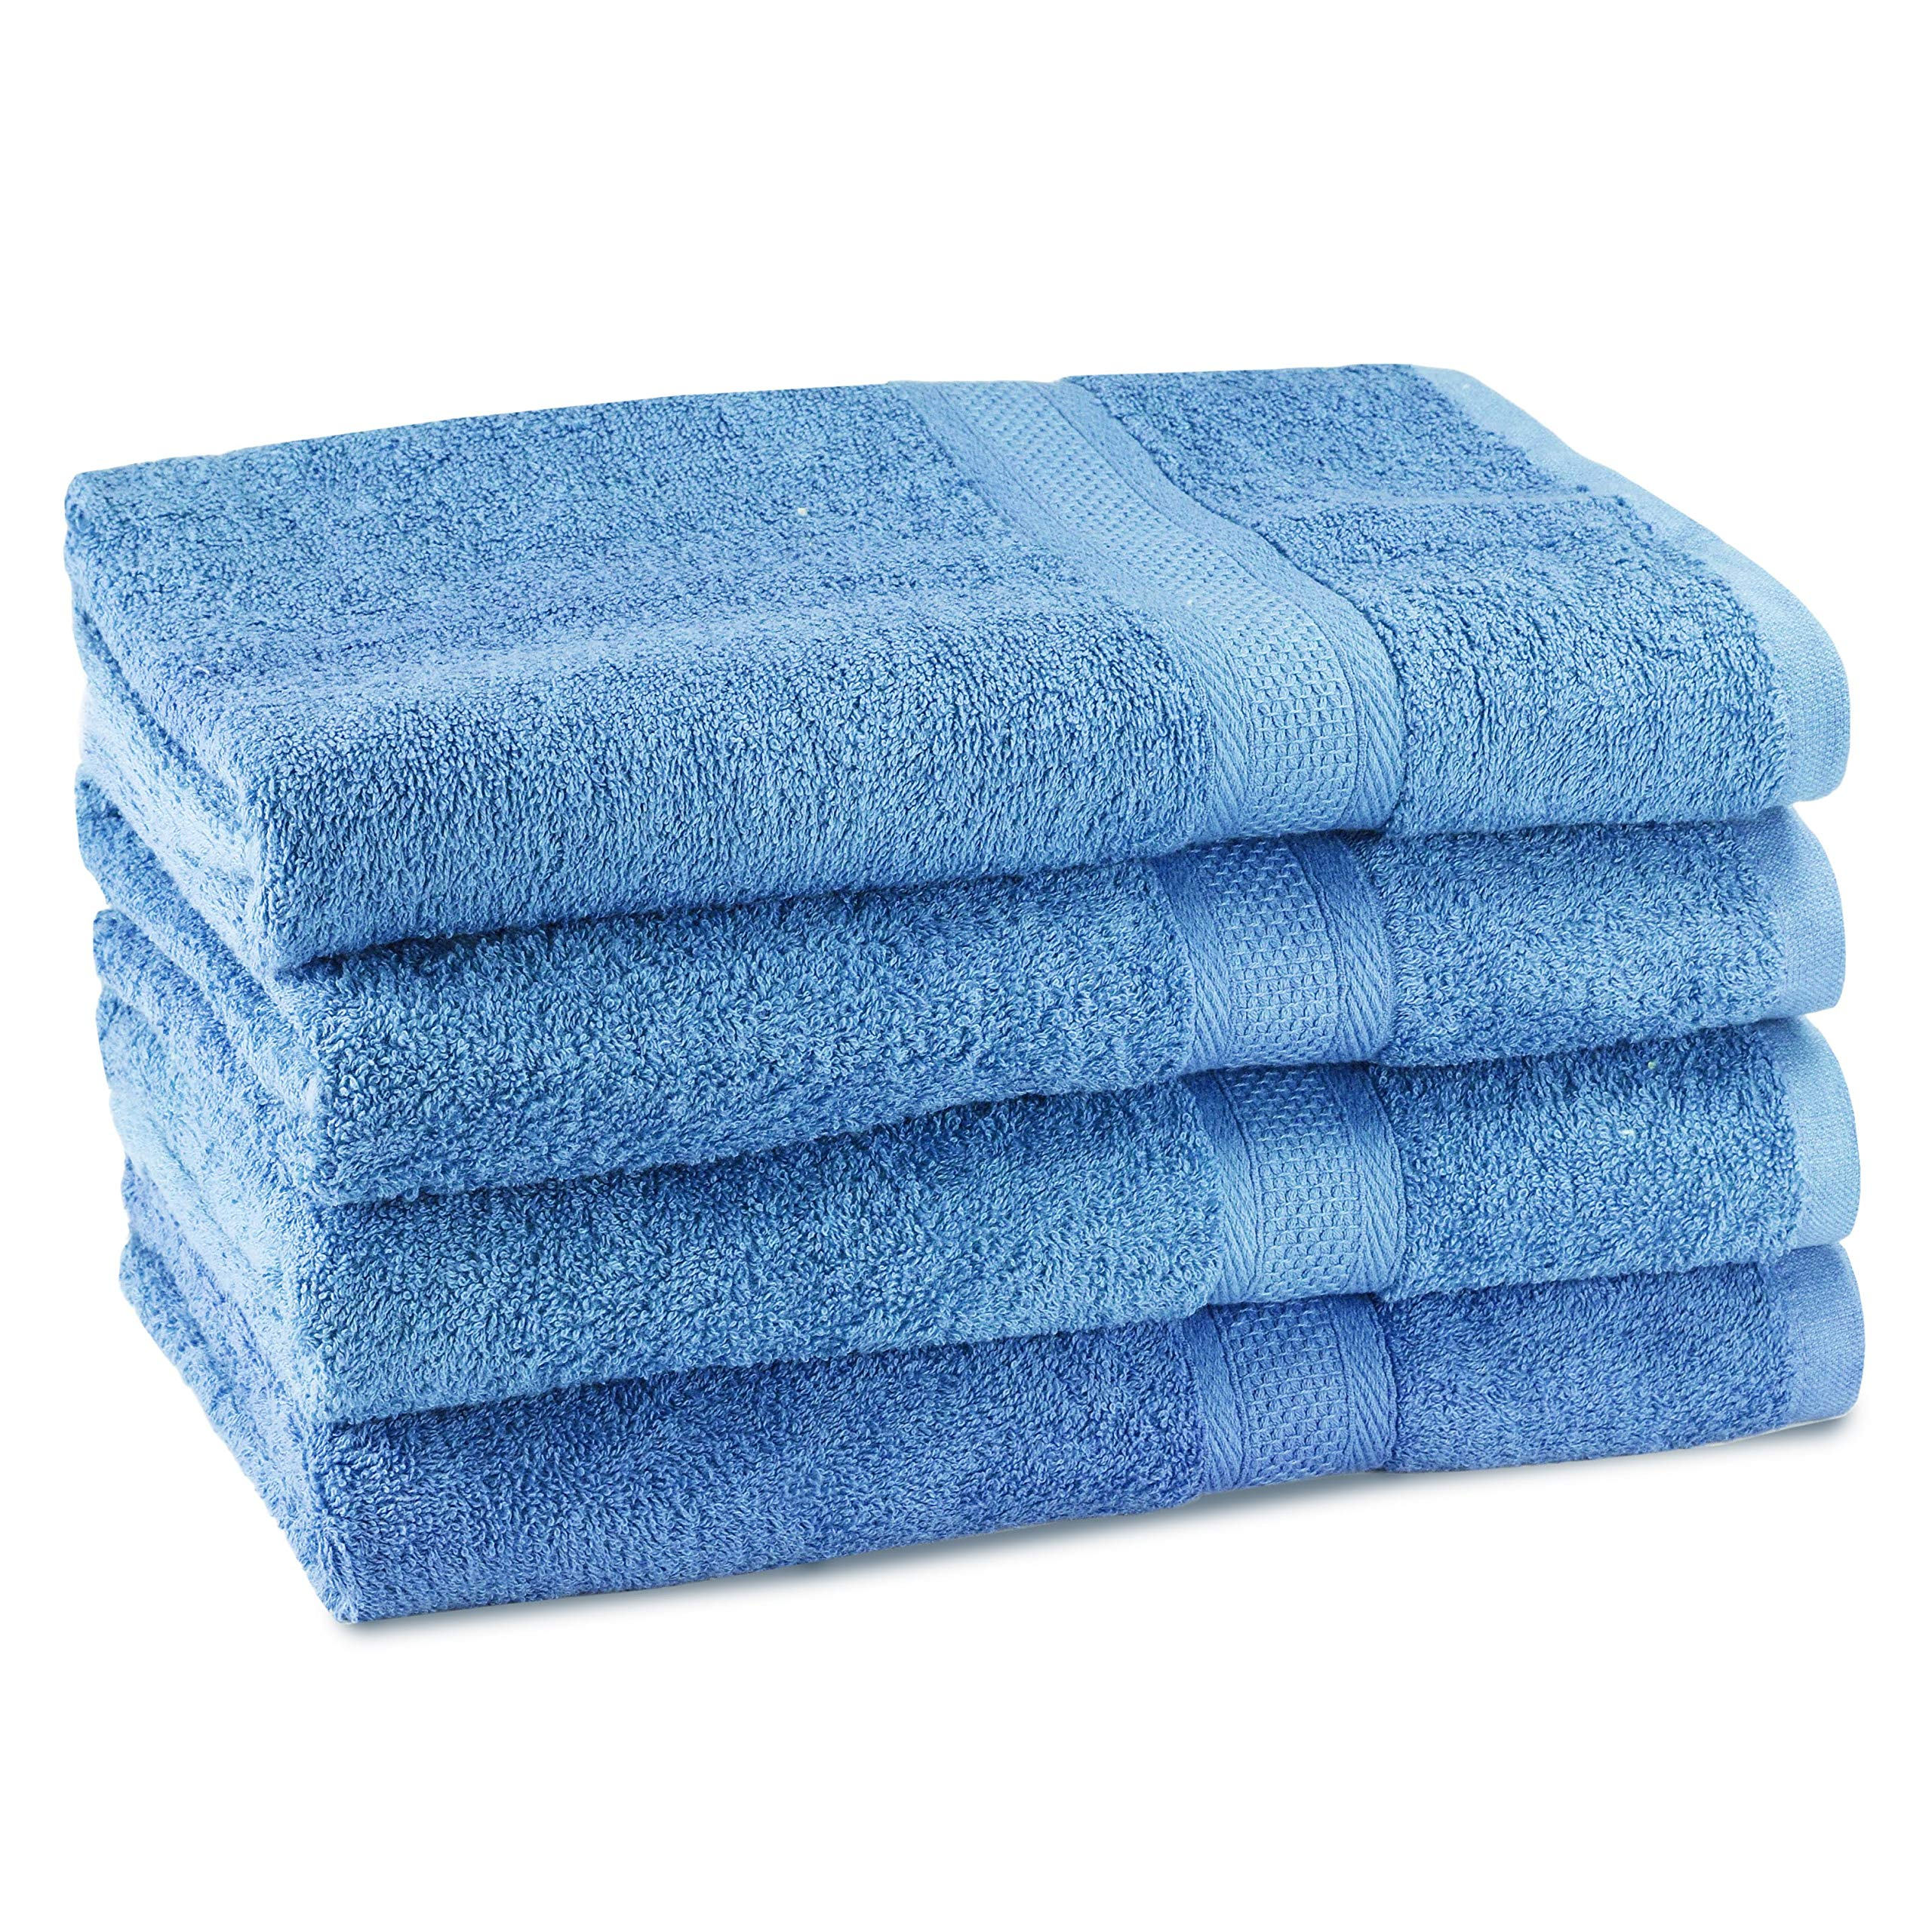 CrystalTowels Premium Bath Towels – 4 Pack - 27'' x 54''- 600 GSM - 100% Virgin Ringspun Cotton - Soft & Absorbent for Home Hotel Spa or Gym (Blue)